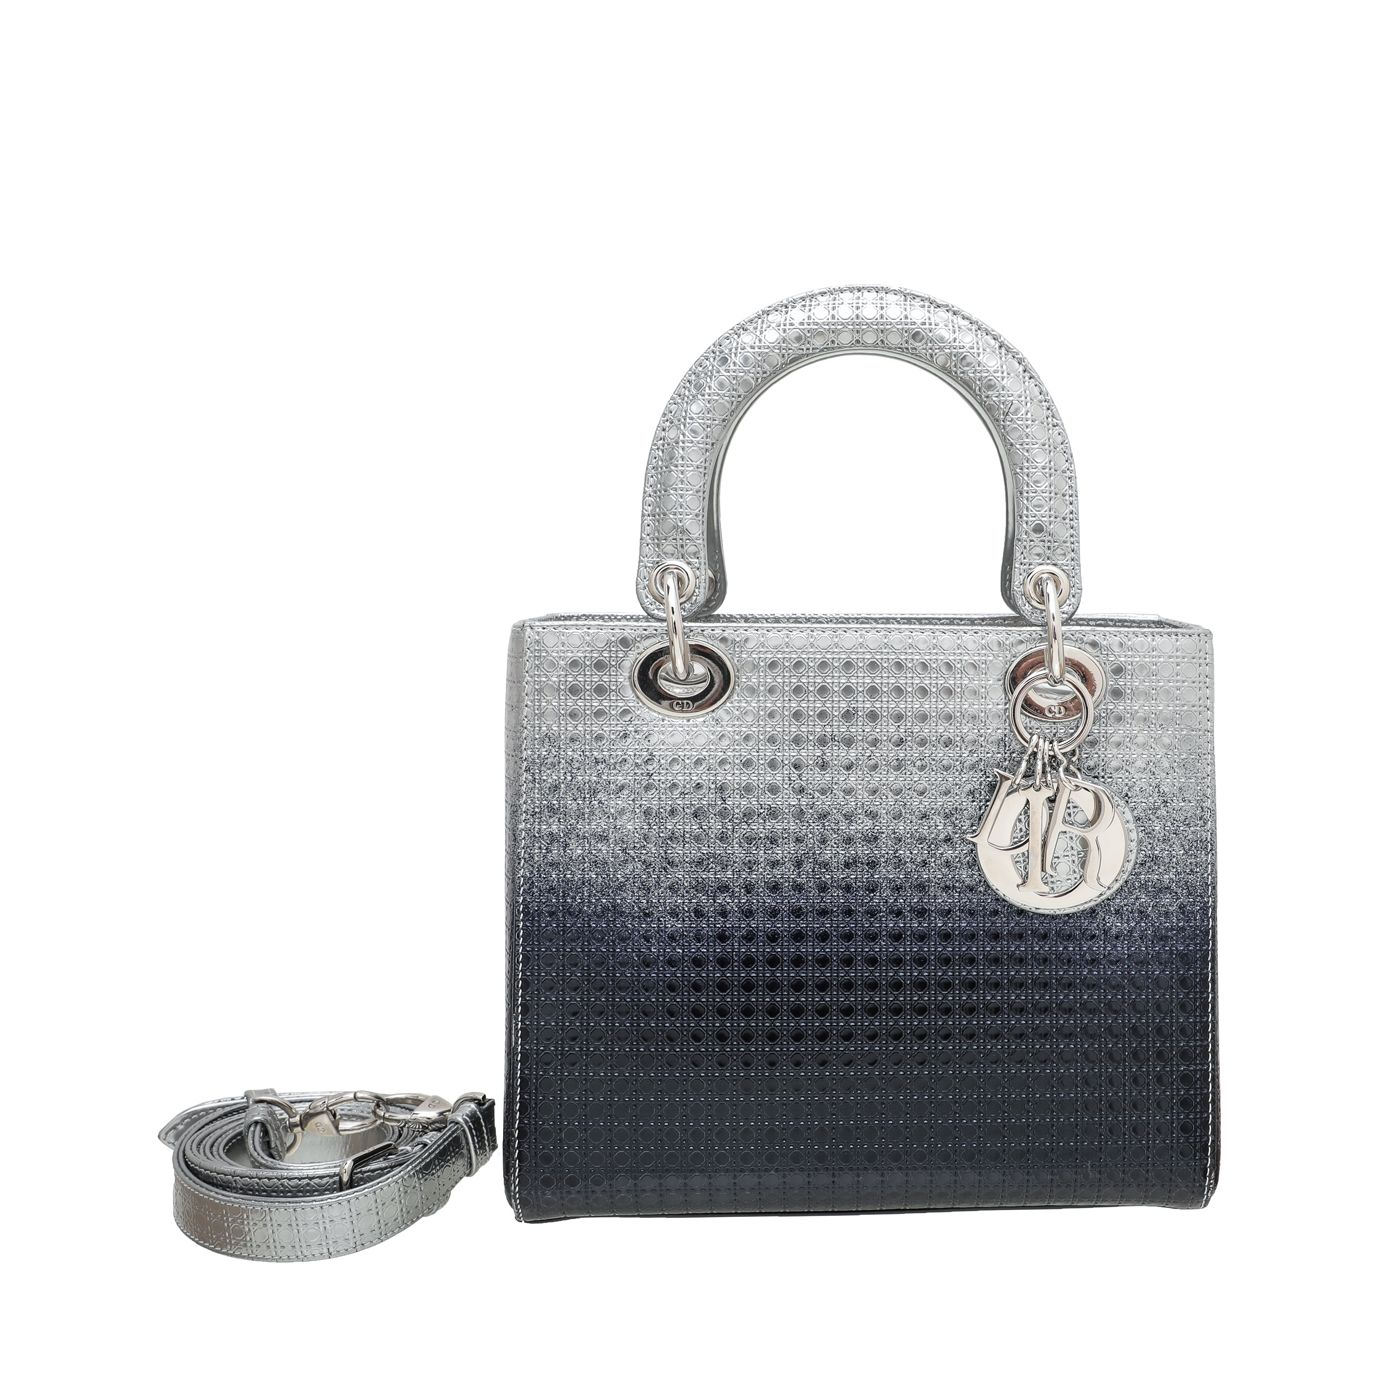 Christian Dior Bicolor Ombre Micro Cannage Lady Dior Bag